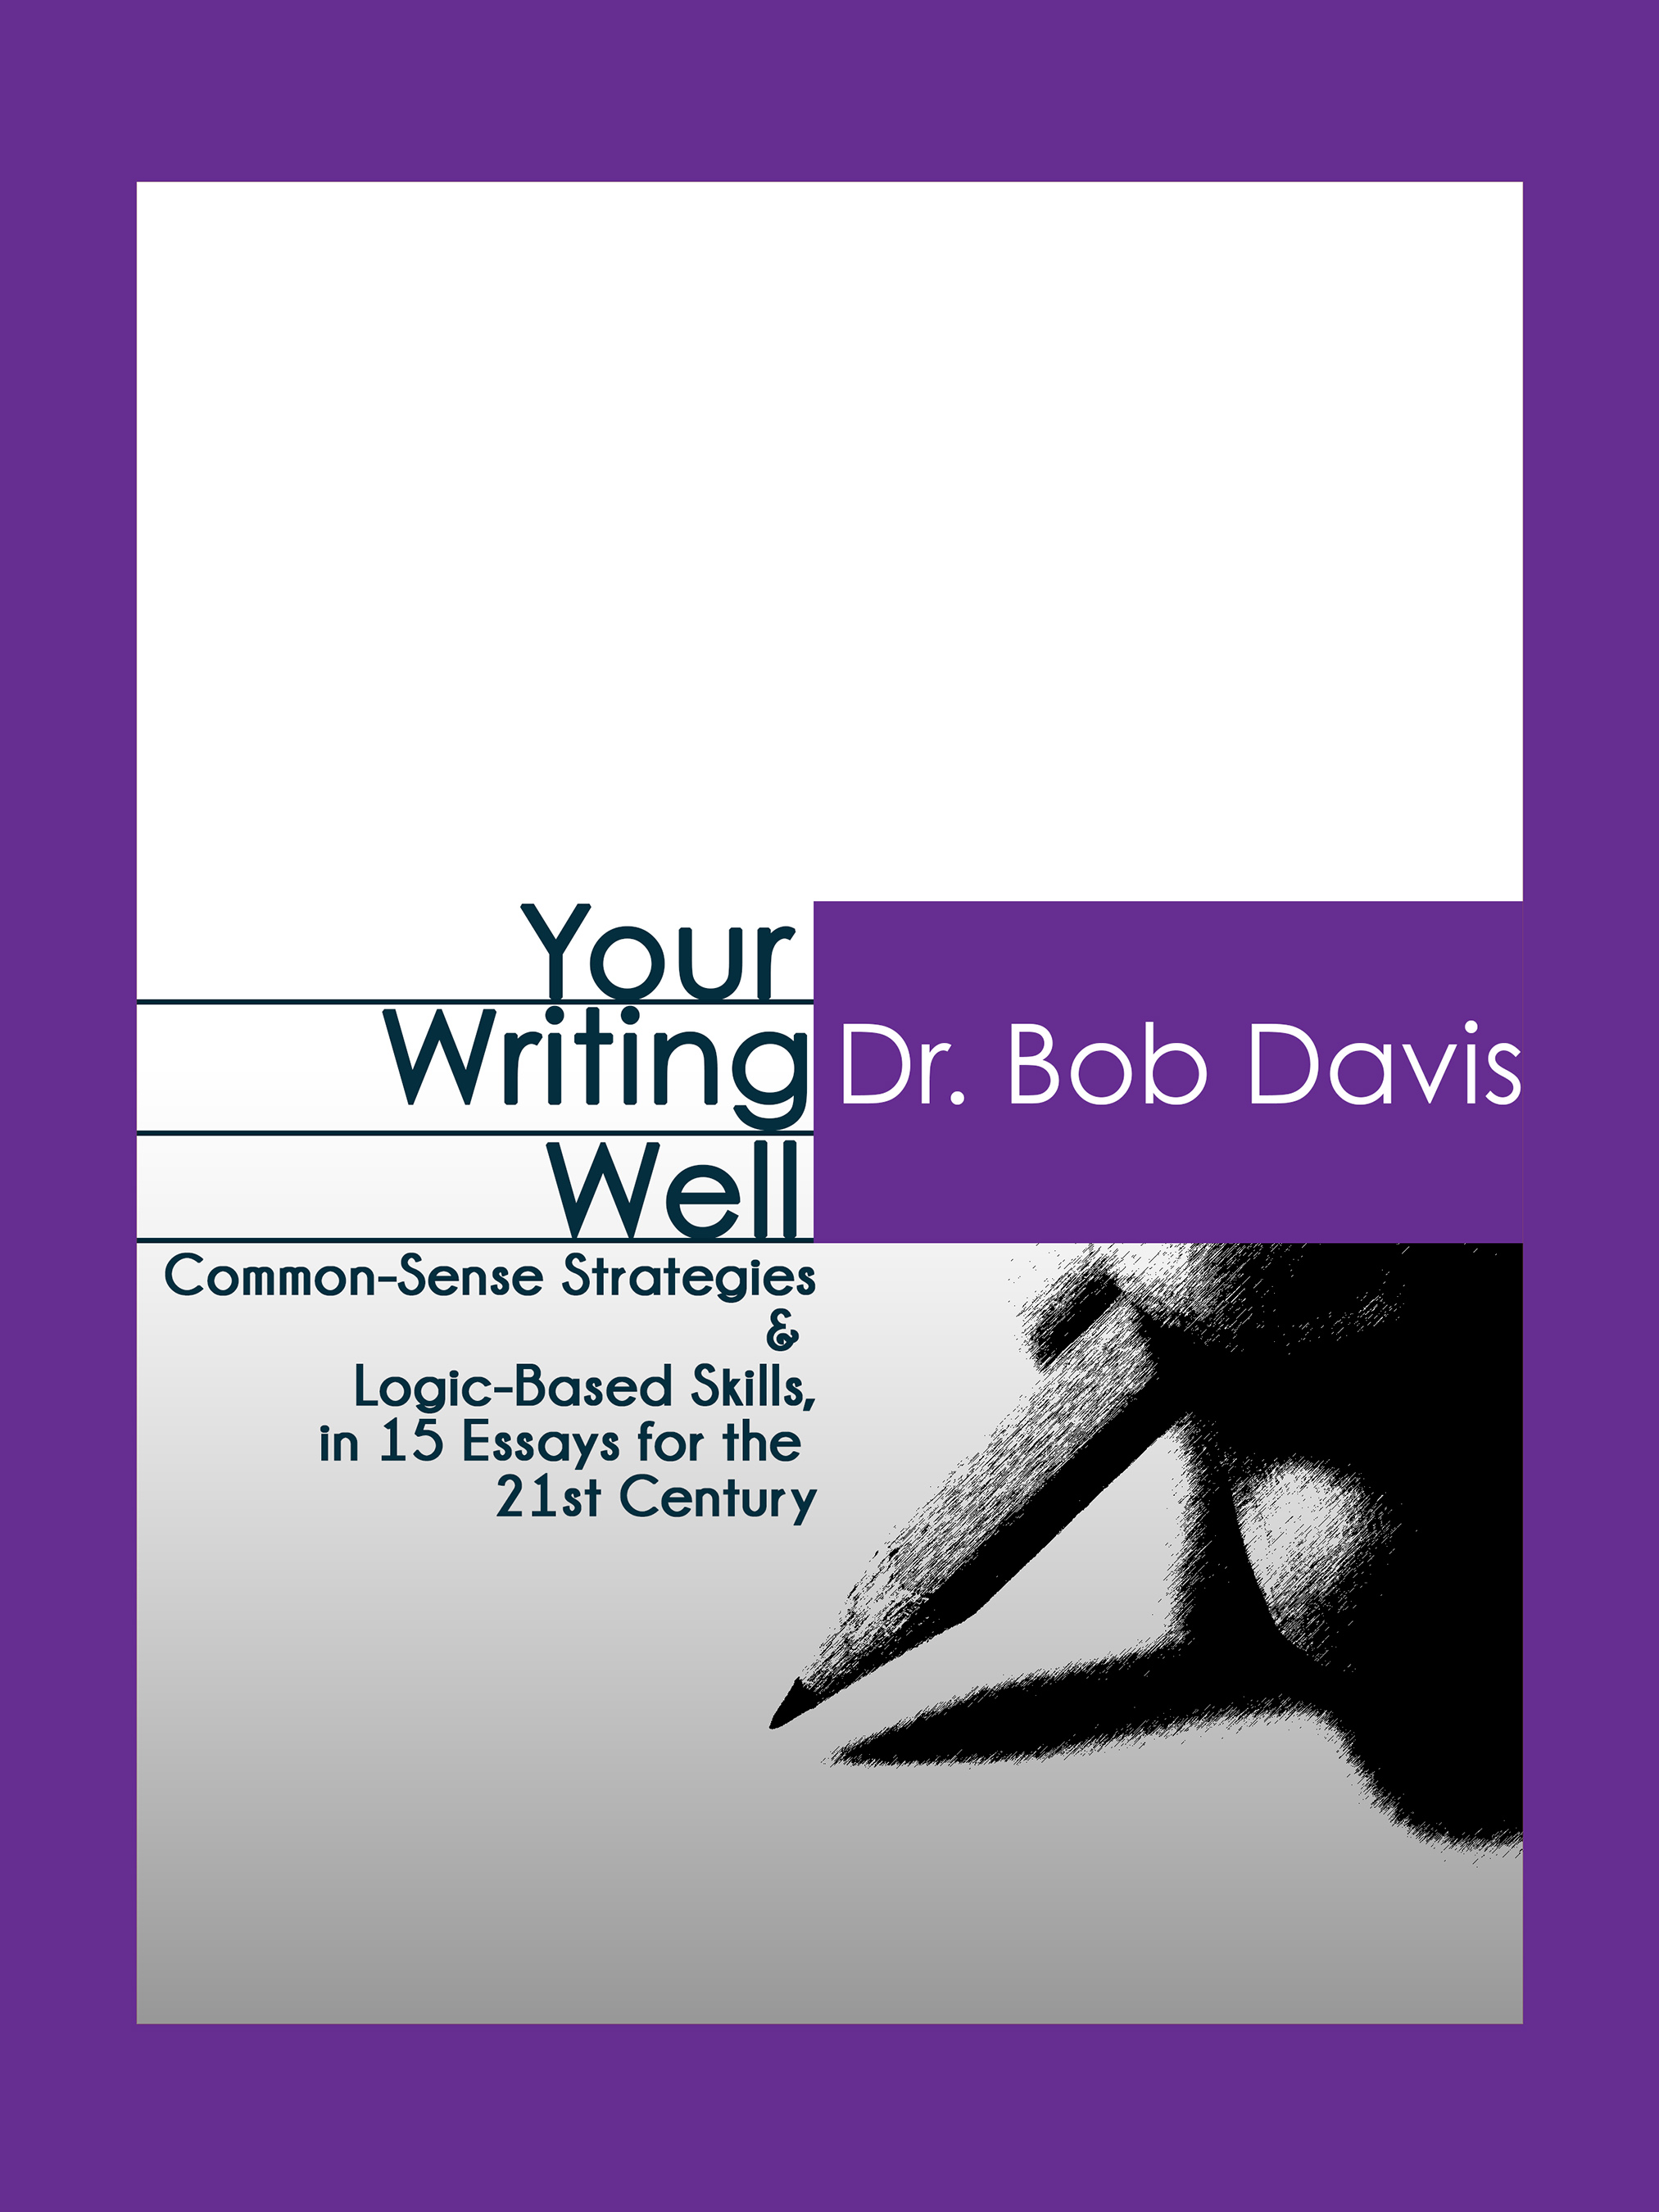 Your Writing Well:Common-Sense Strategies & Logic-Based Skills, in 15 Essays for the 21st Century by Dr. Bob Davis